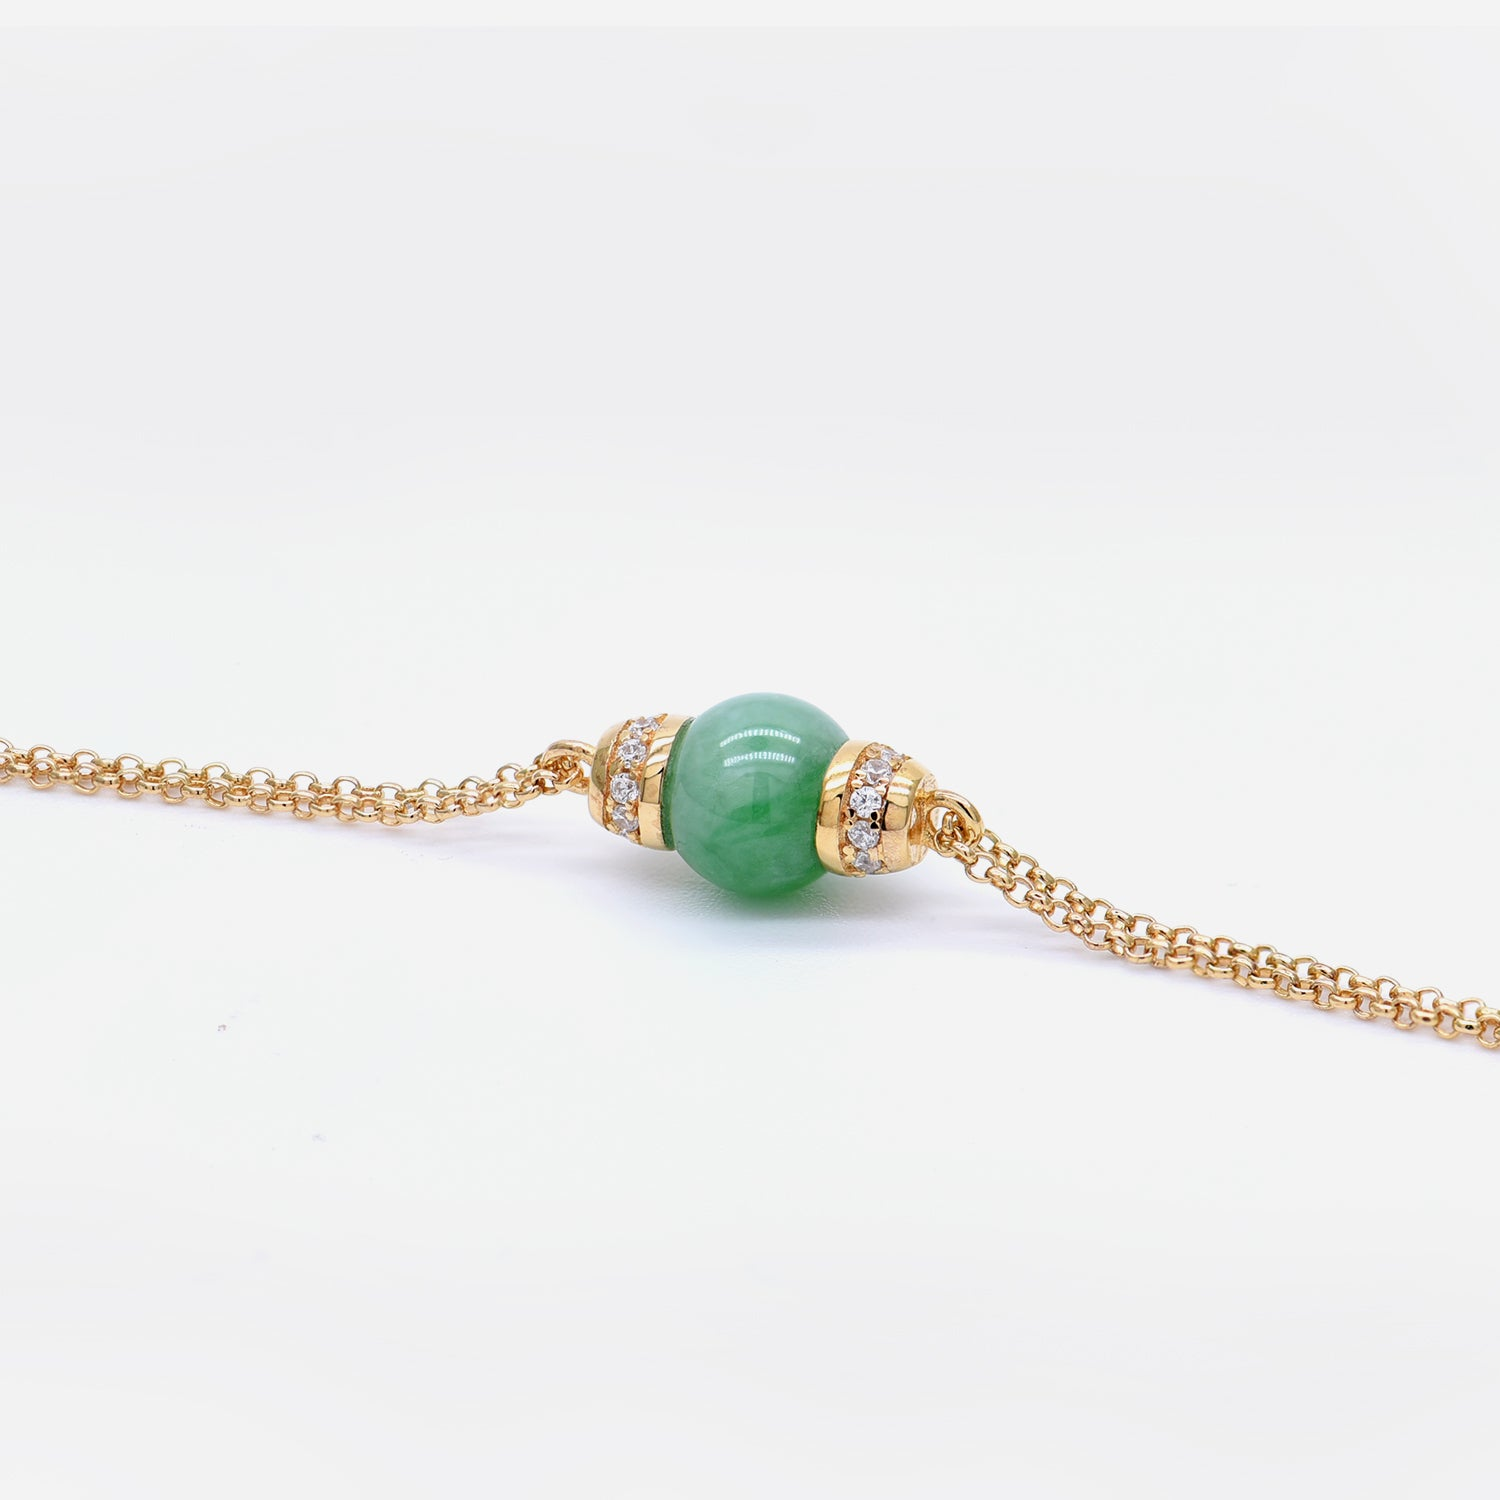 EDEN 悅 Bracelet in Green Jade